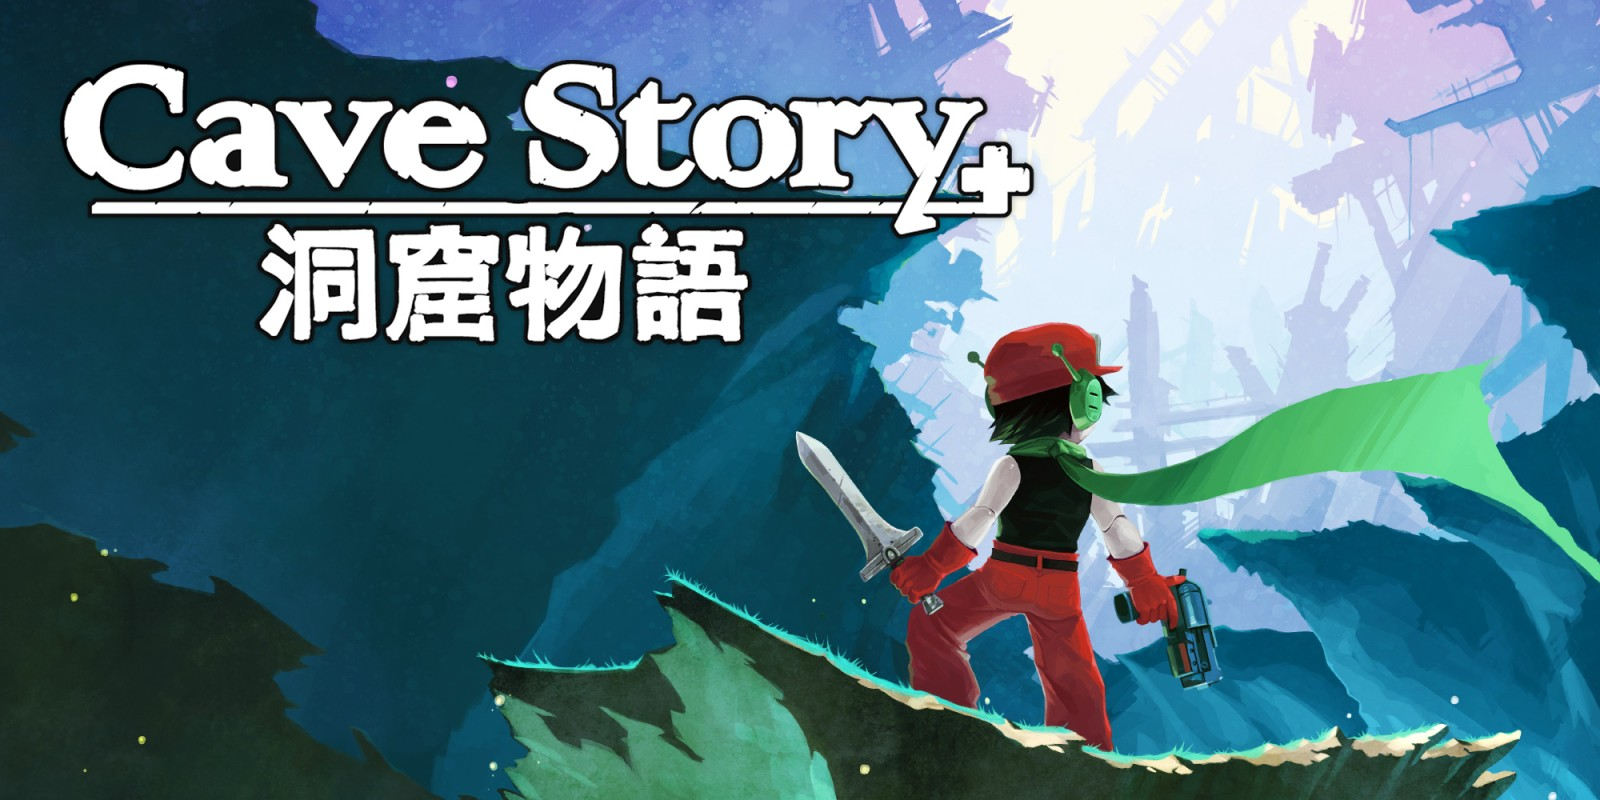 Switch eShop Sale from $2: Cave Story+, Binding of Isaac, Ikaruga